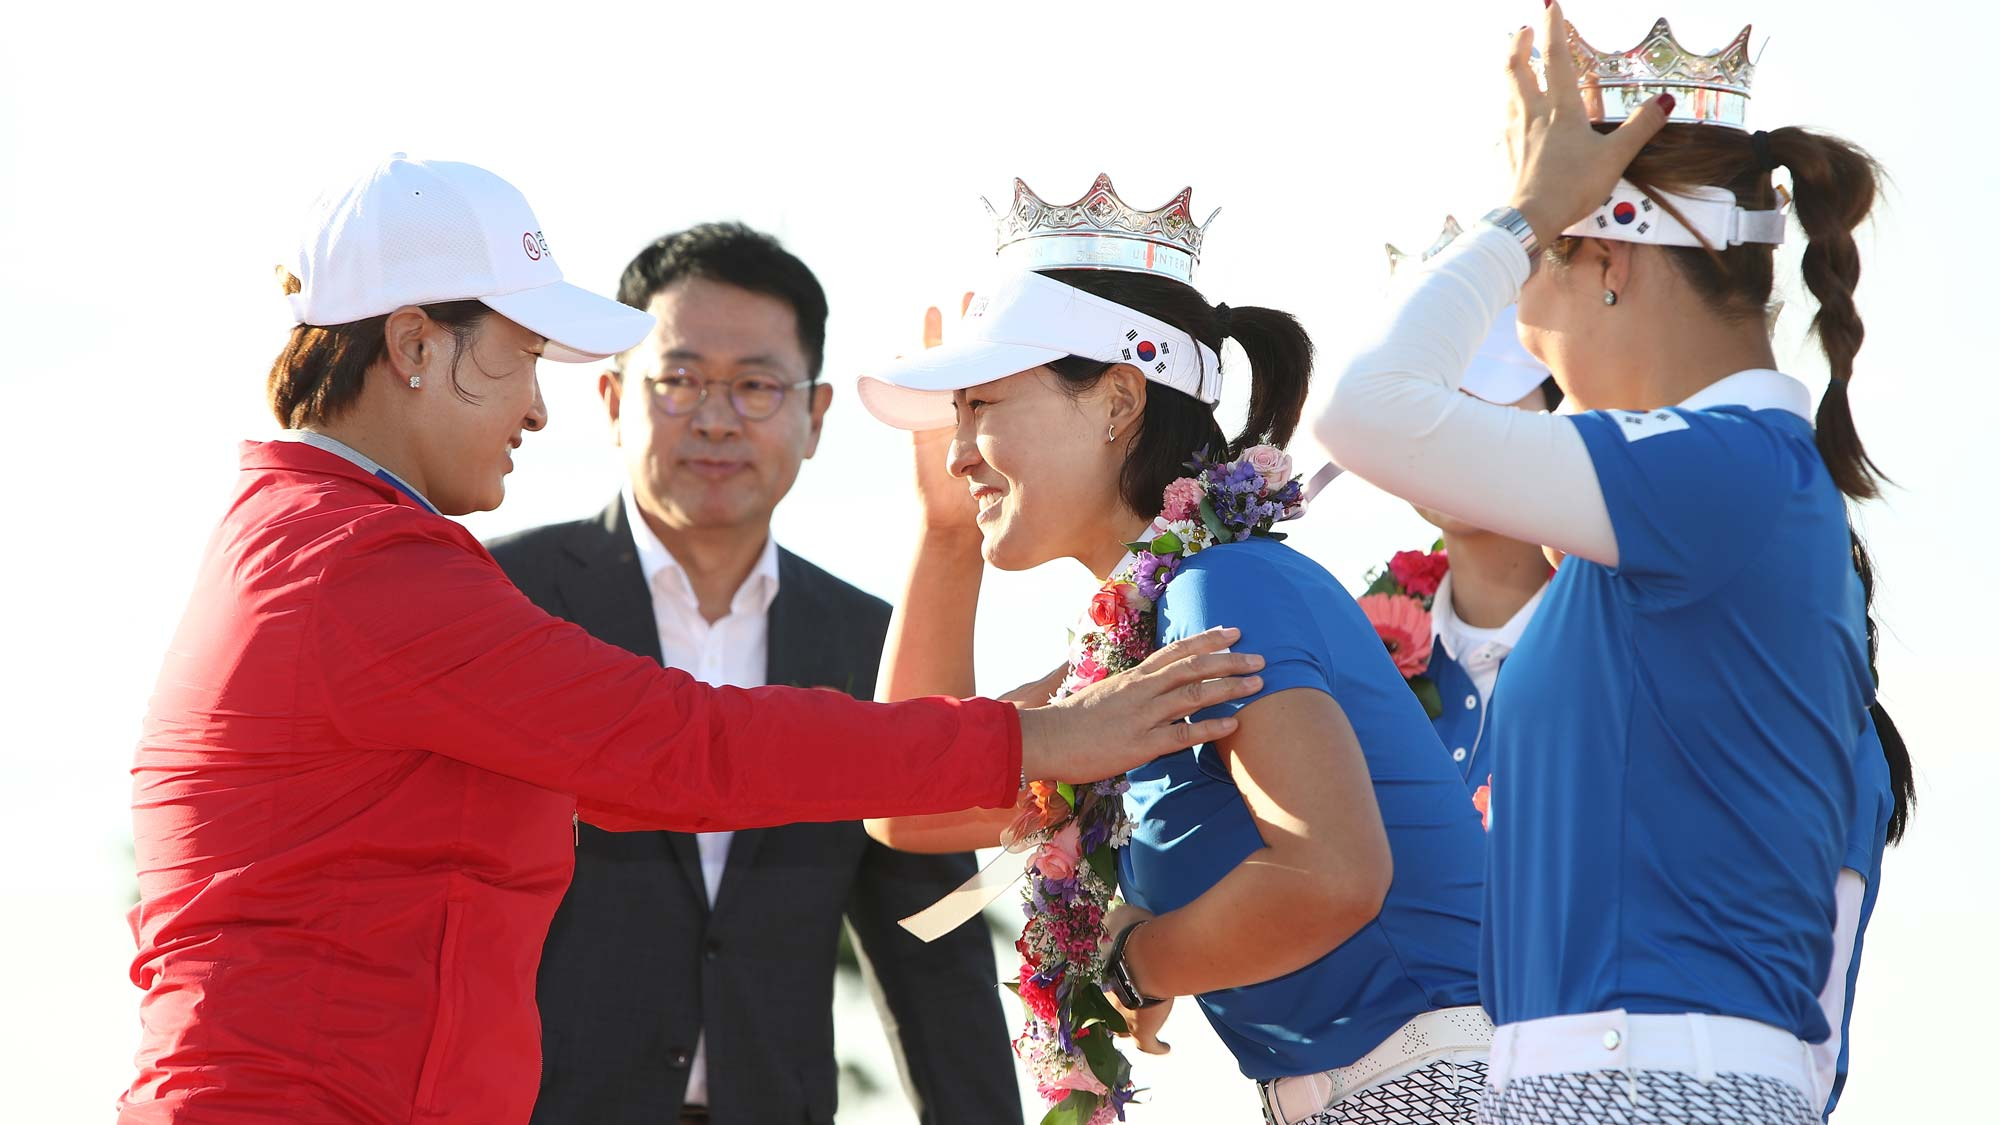 In Gee Chun of South Korea is crowned by Korean golf legend, Se Ri Pak, during the victory ceremony after winning the UL International Crown